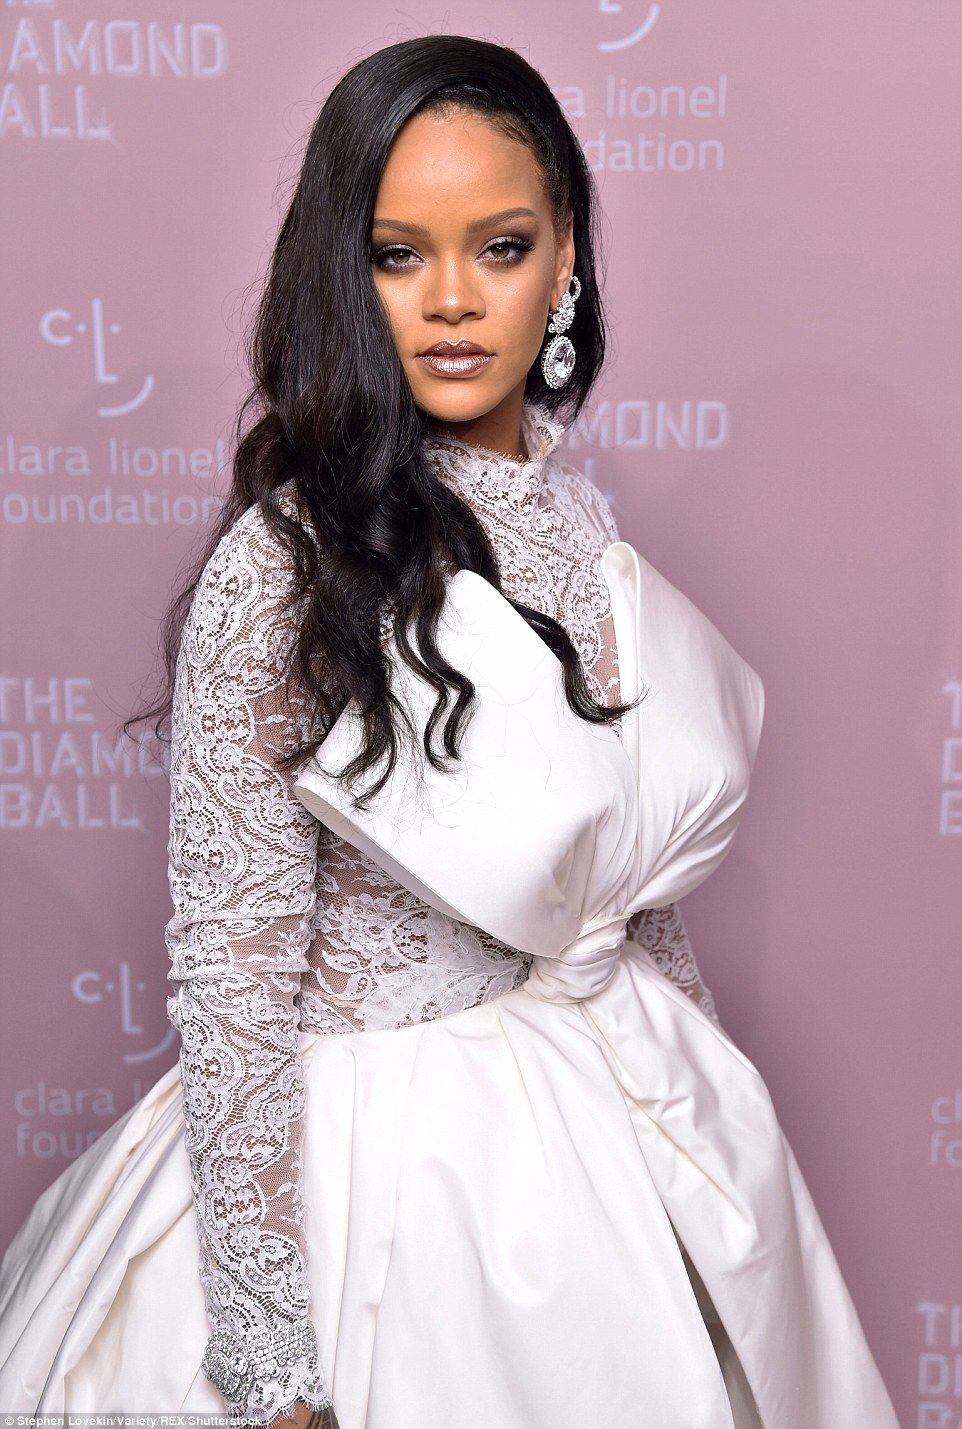 92f30f67c9f8 Glamorous  The Fenty Beauty goddess  glam perfectly complemented her  angelic look with a m...  rihanna